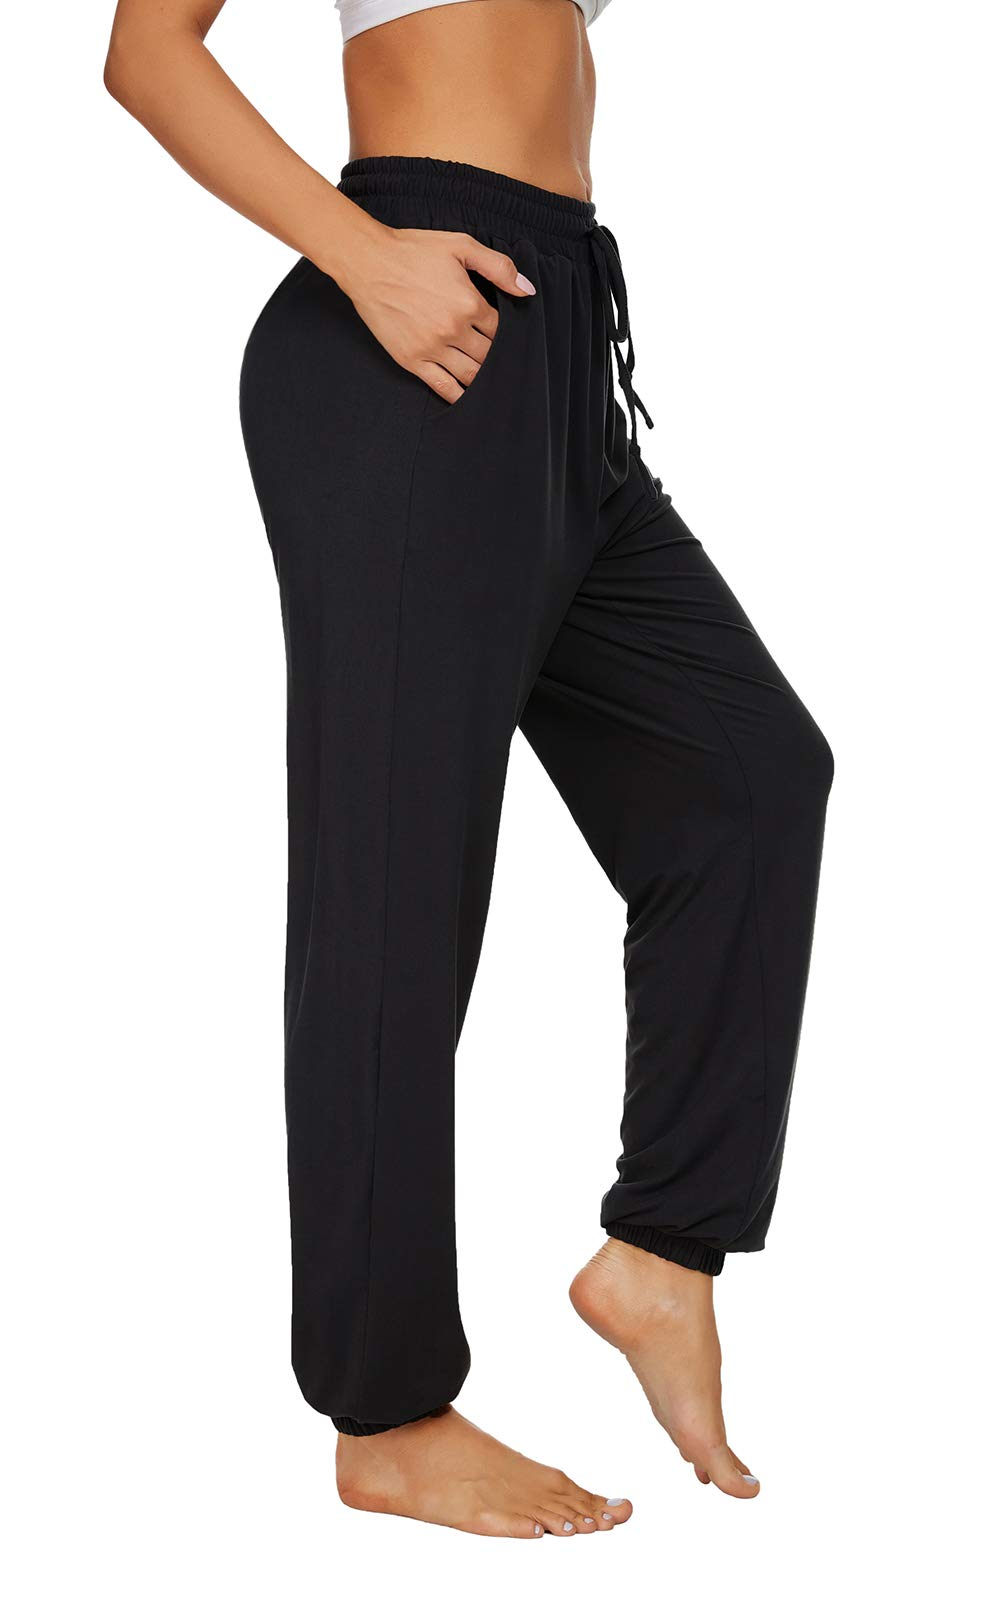 TARSE Womens Yoga Joggers Loose Sweatpants Workout Comfy Drawstring Lounge Pants with